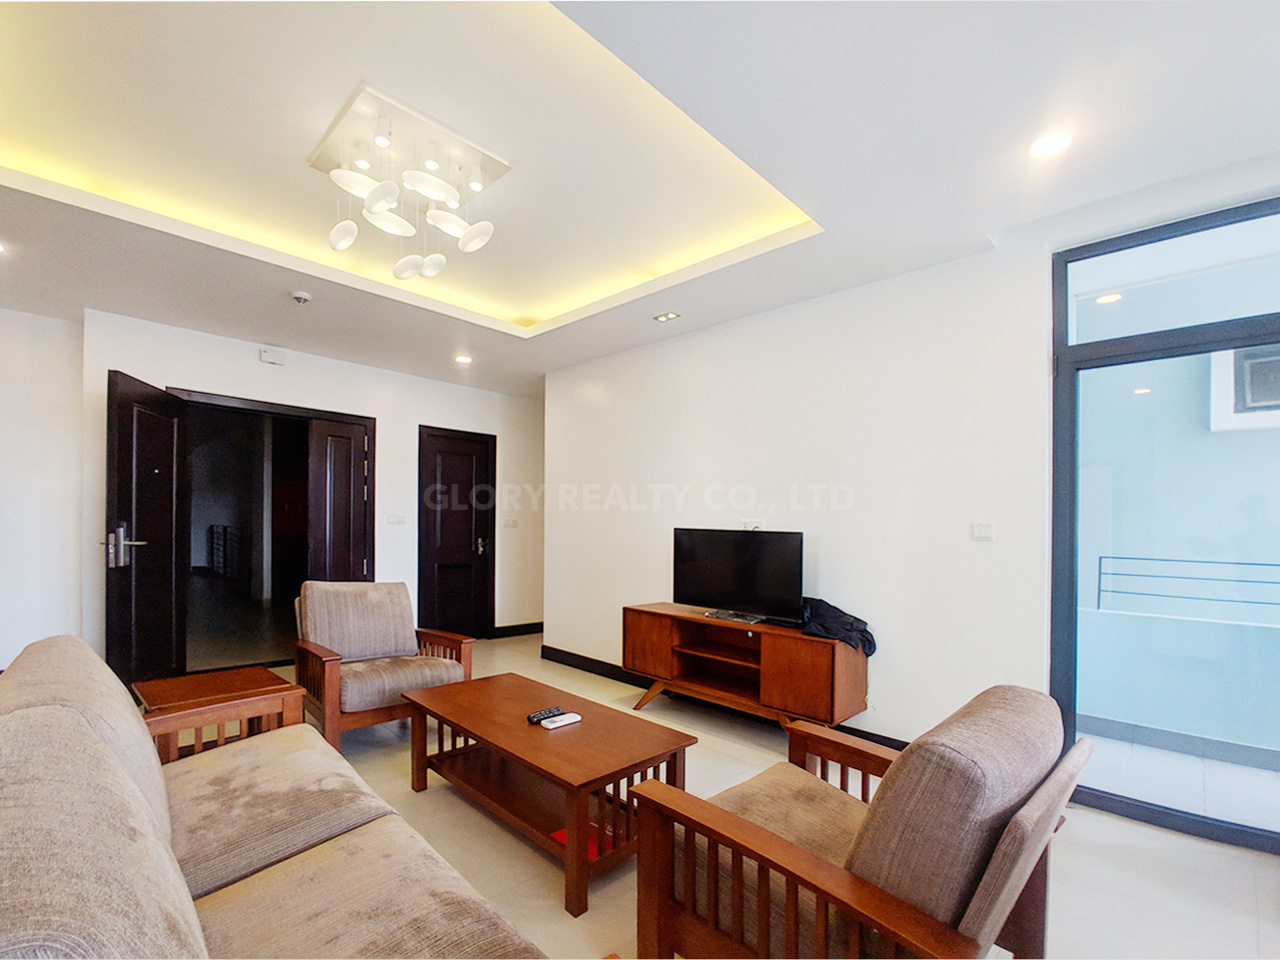 2 Beds with 3 baths condo for urgent sale in Daun Pen area